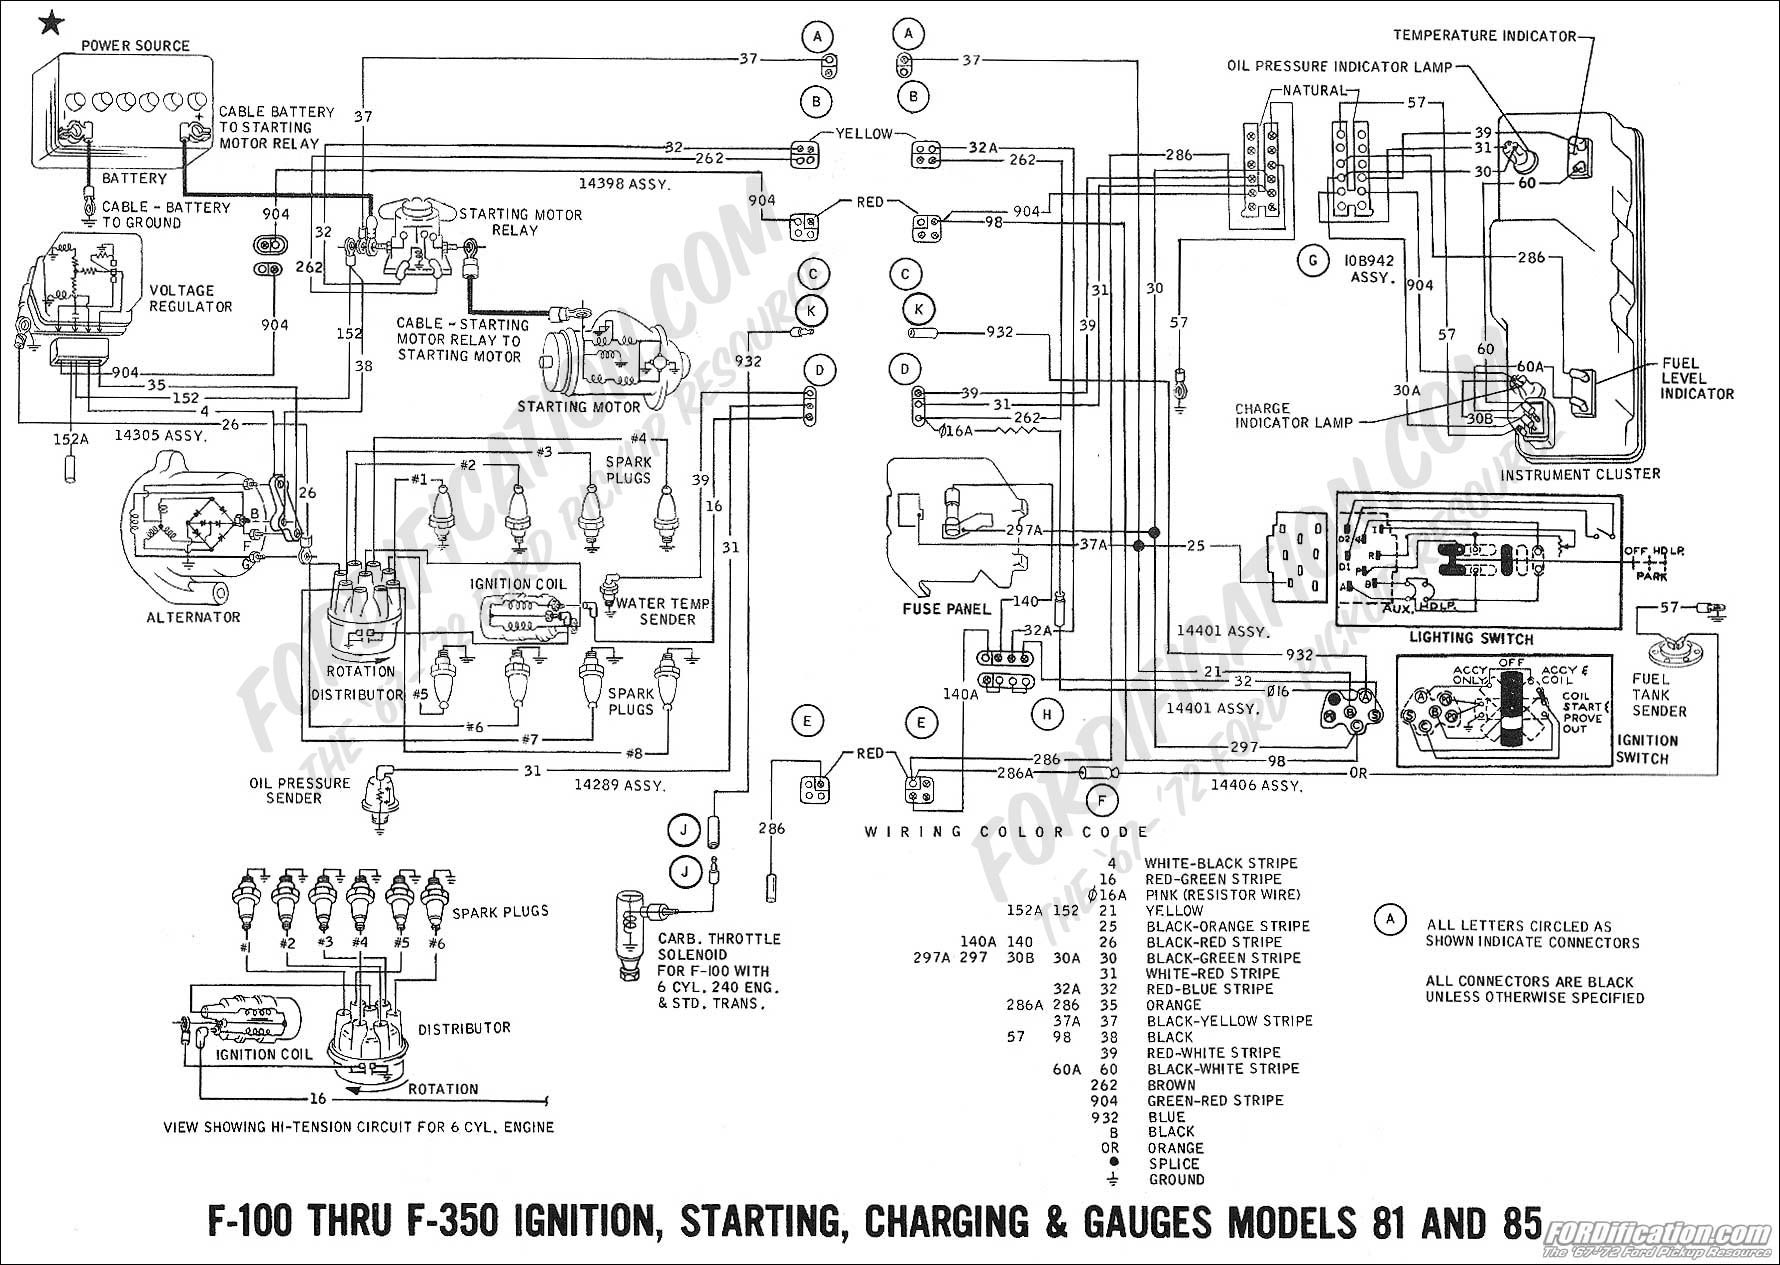 Saturn Sl2 Engine Diagram My Wiring 1995 70 Bronco Free Image About Rh Wuzzie Co Sl1